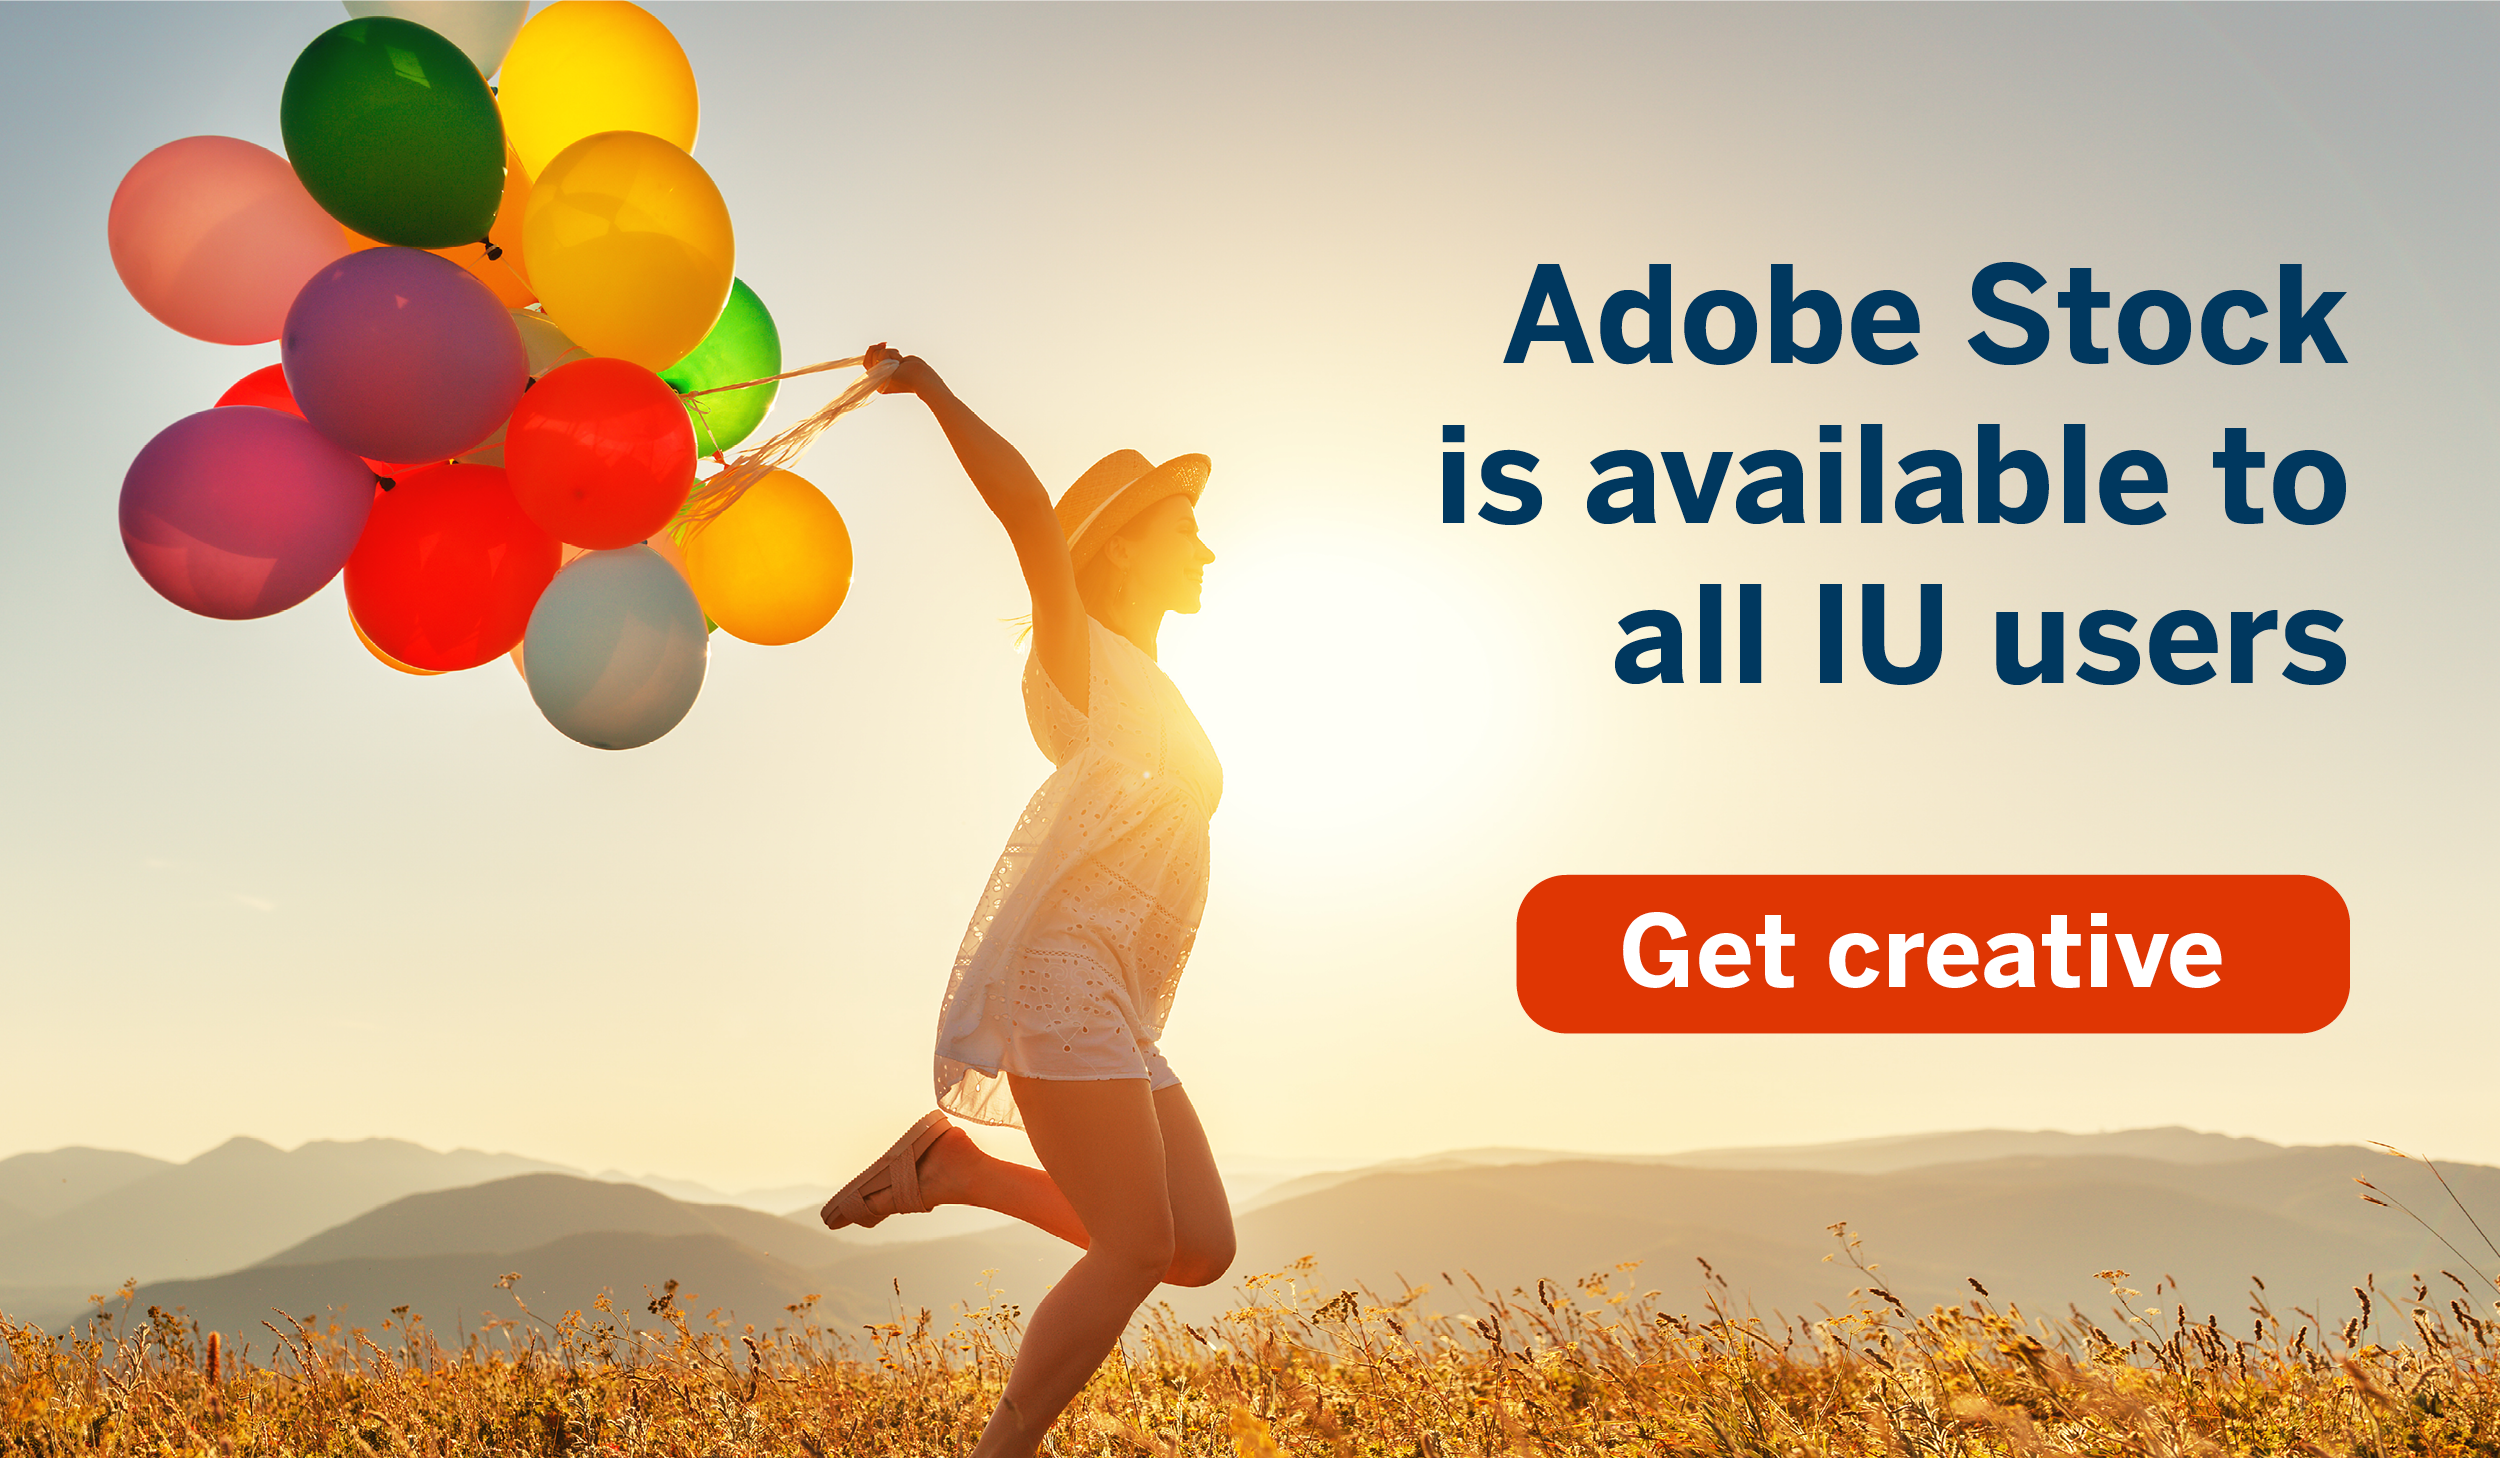 Adobe Stock is available to all IU users